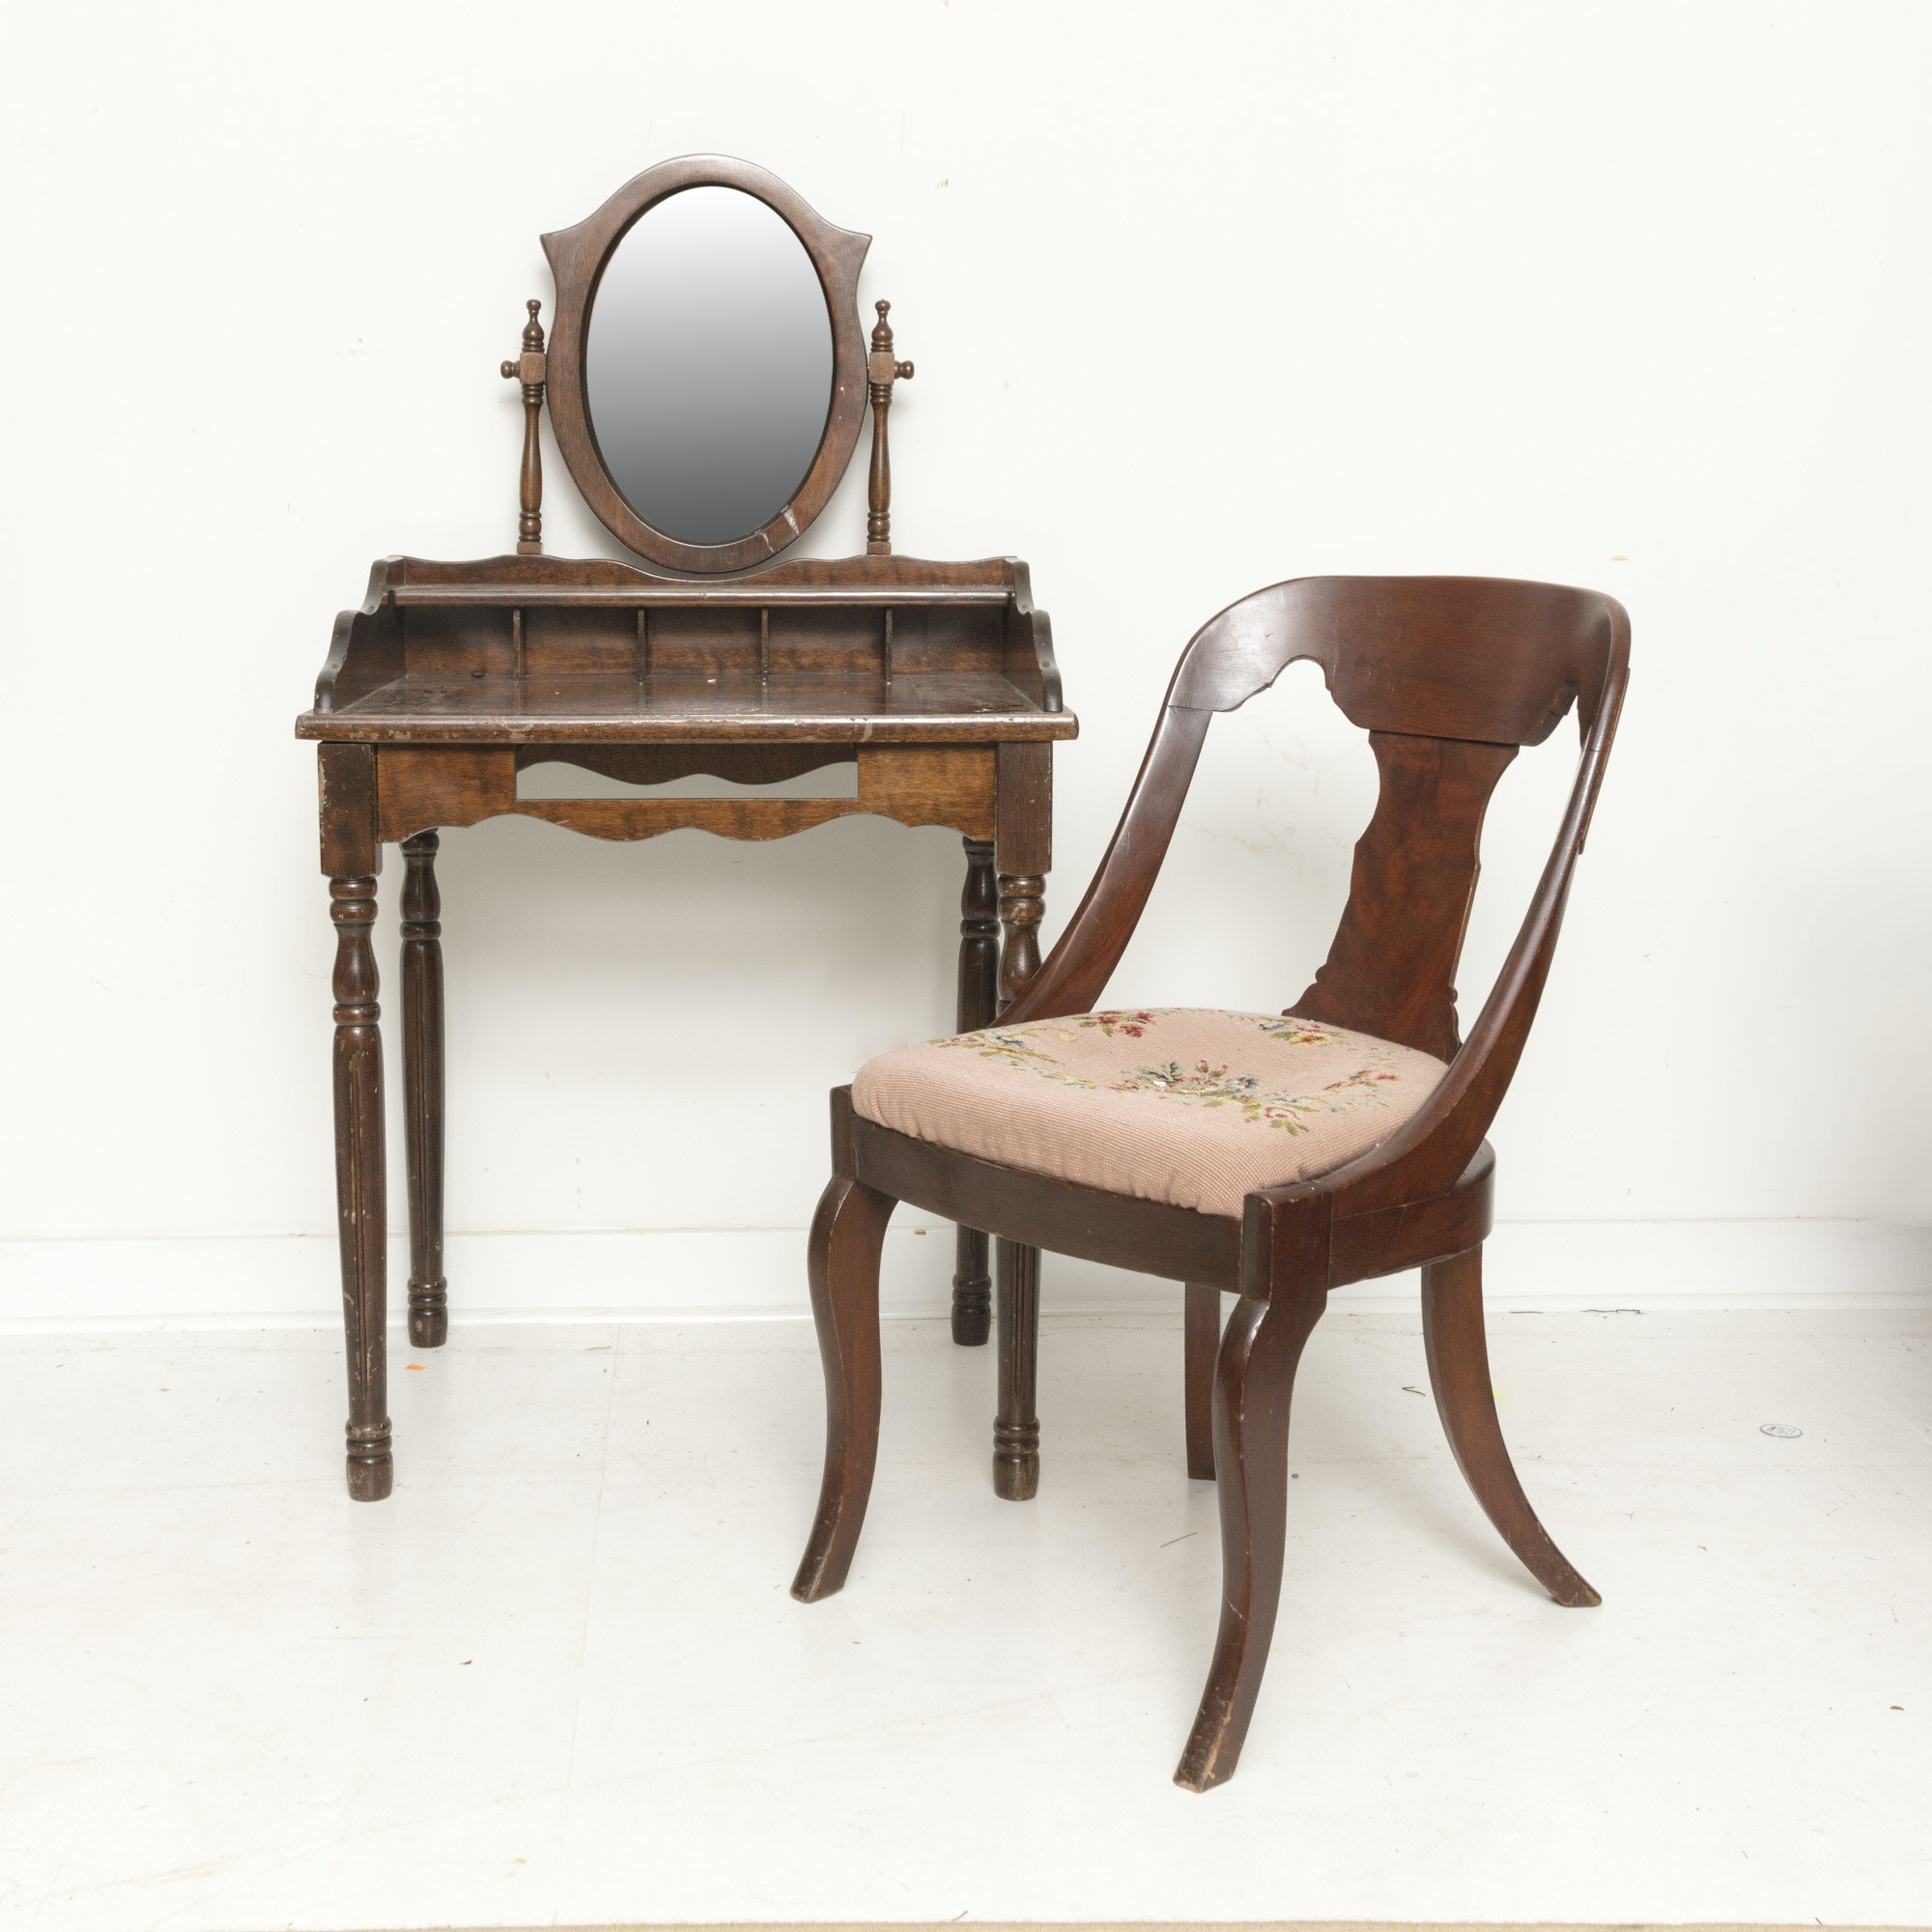 Antique Mahogany Vanity Table With Mirror and Victorian Style Chair